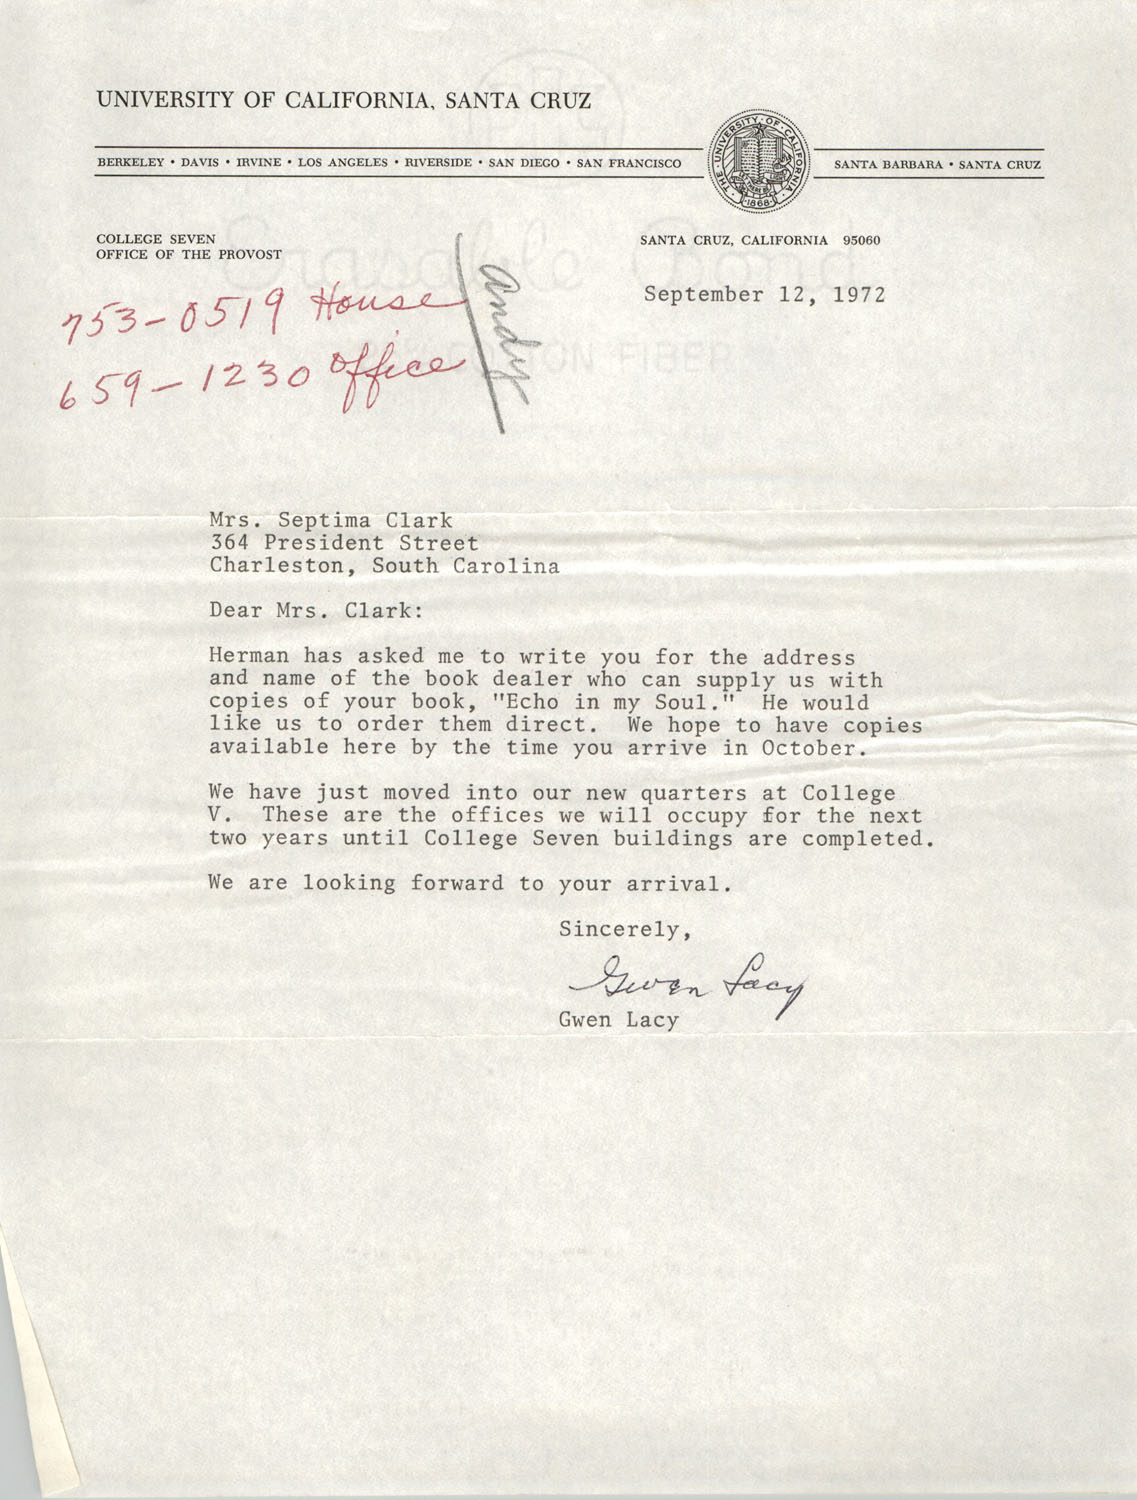 Letter from Gwen Lacy to Septima P. Clark, September 12, 1972